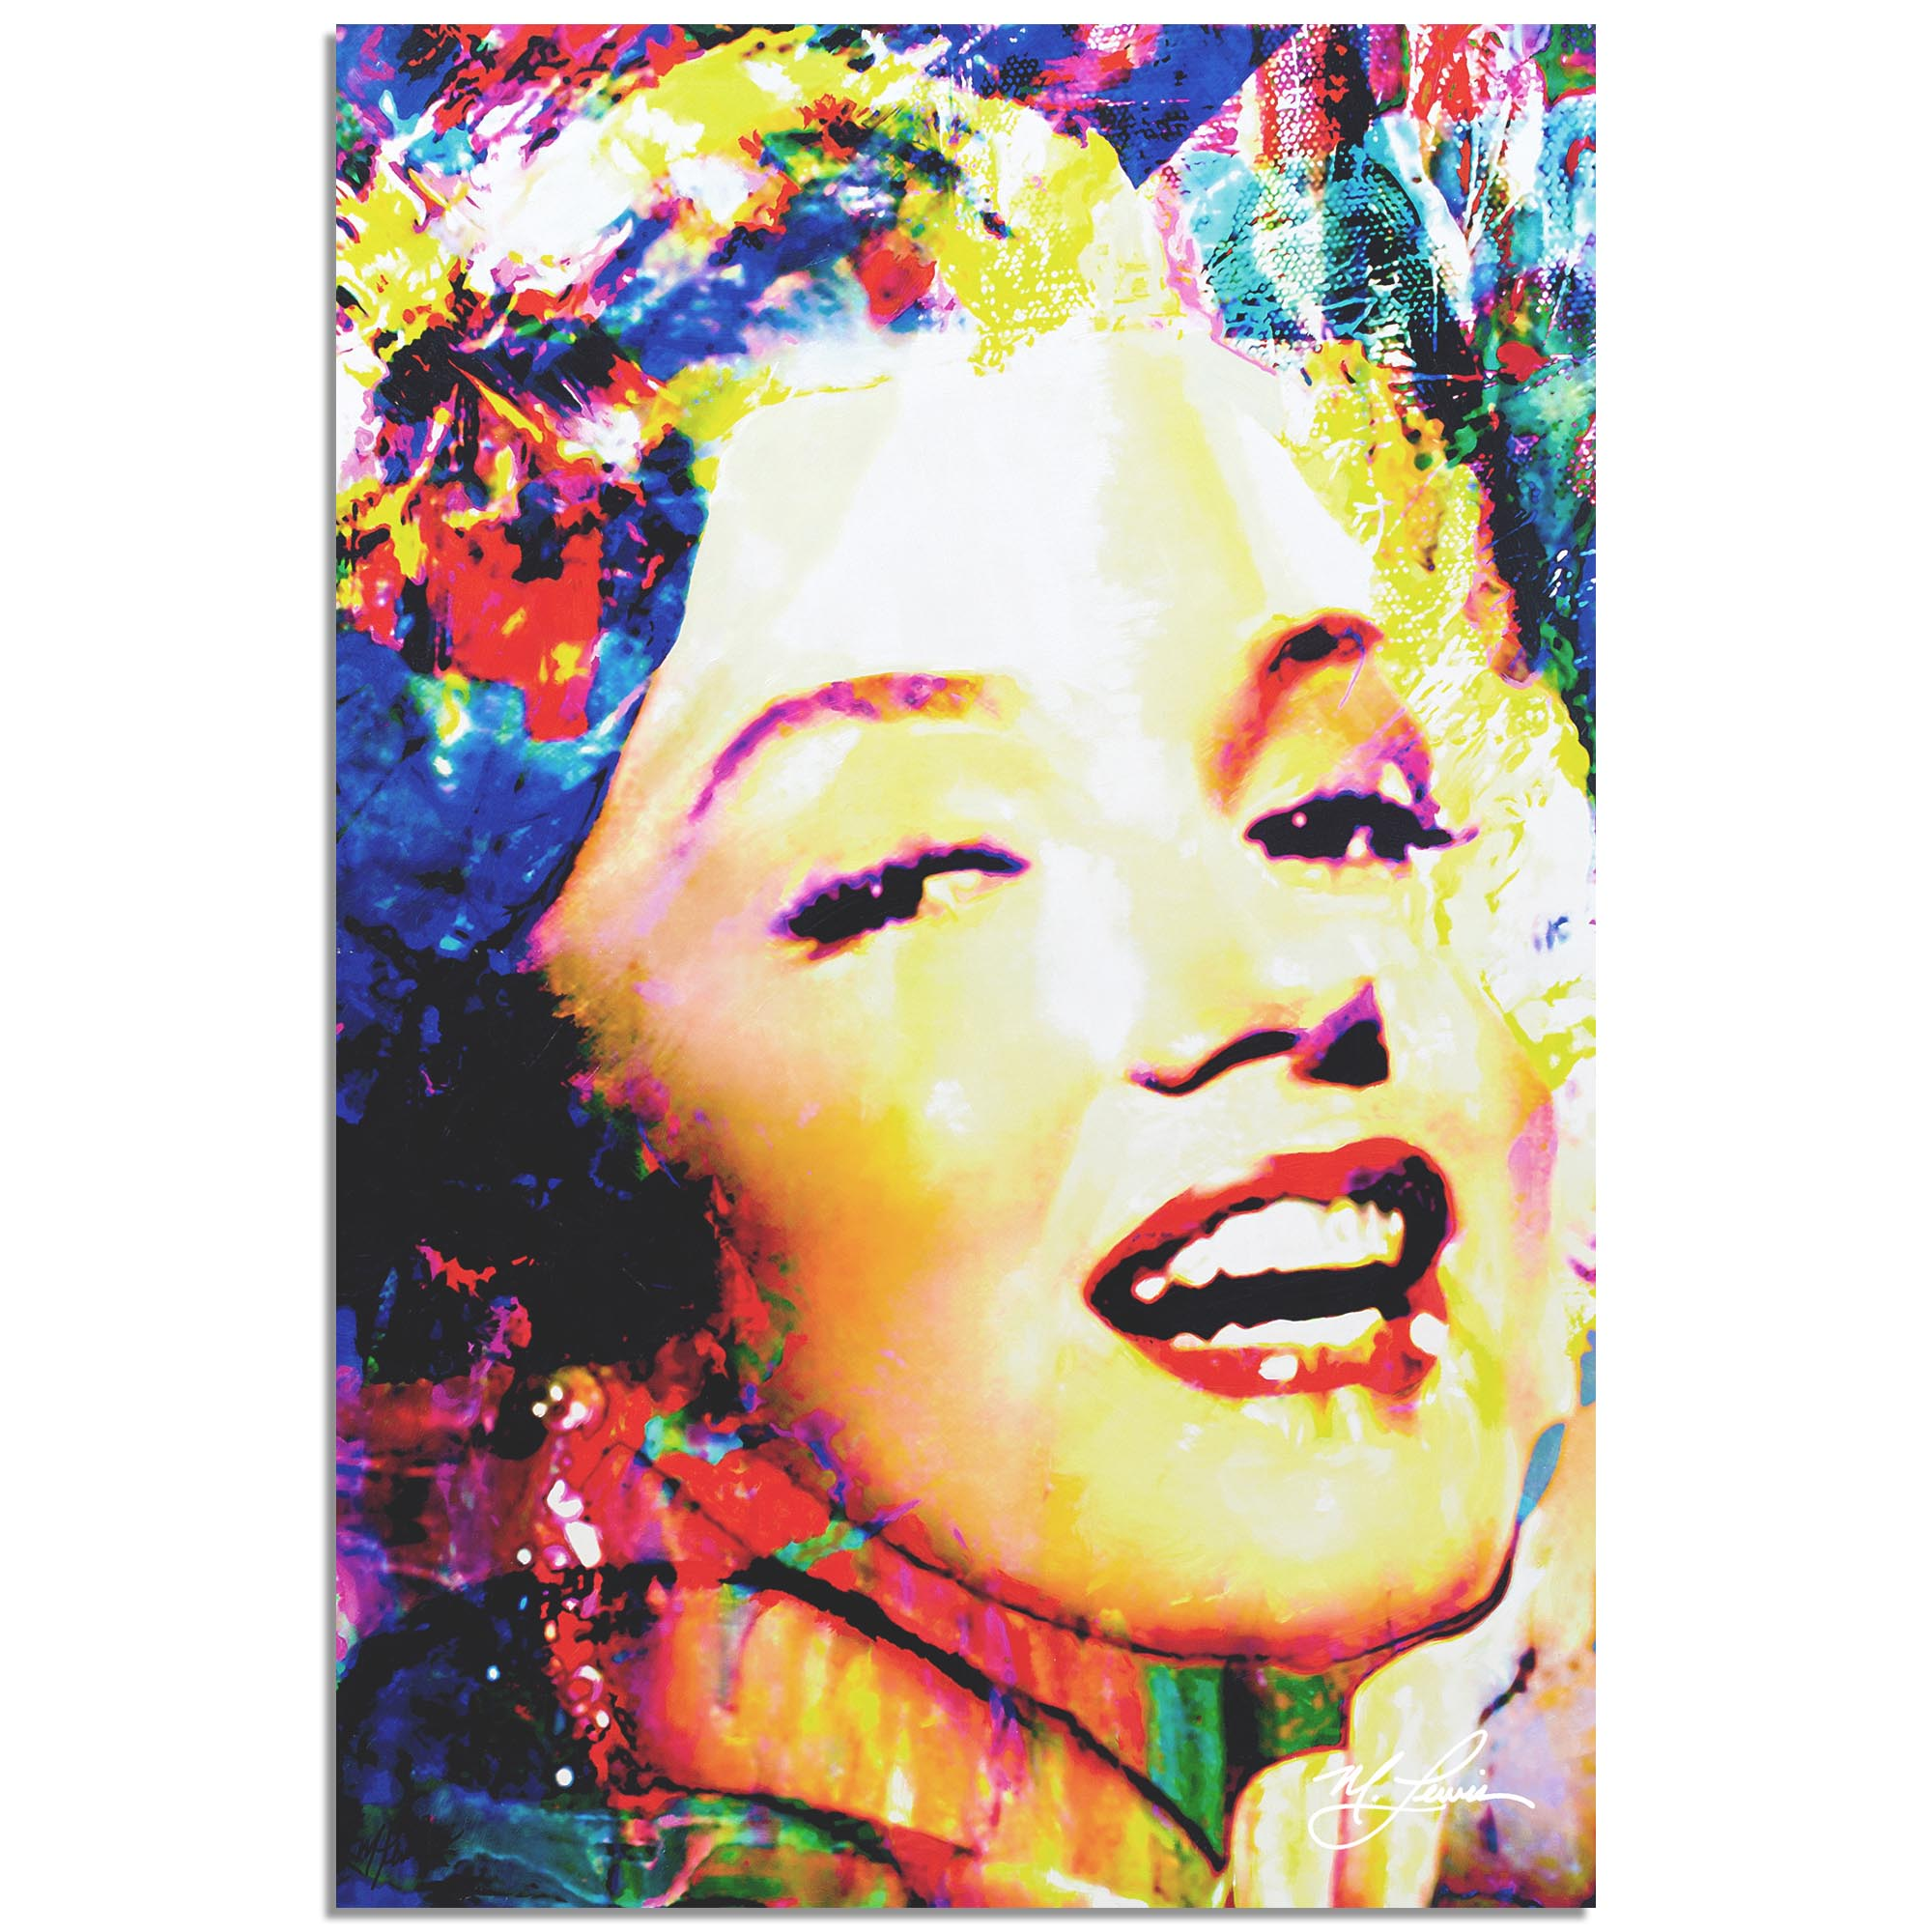 Marilyn Monroe Marilyn Bee by Mark Lewis - Celebrity Pop Art on Metal or Plexiglass